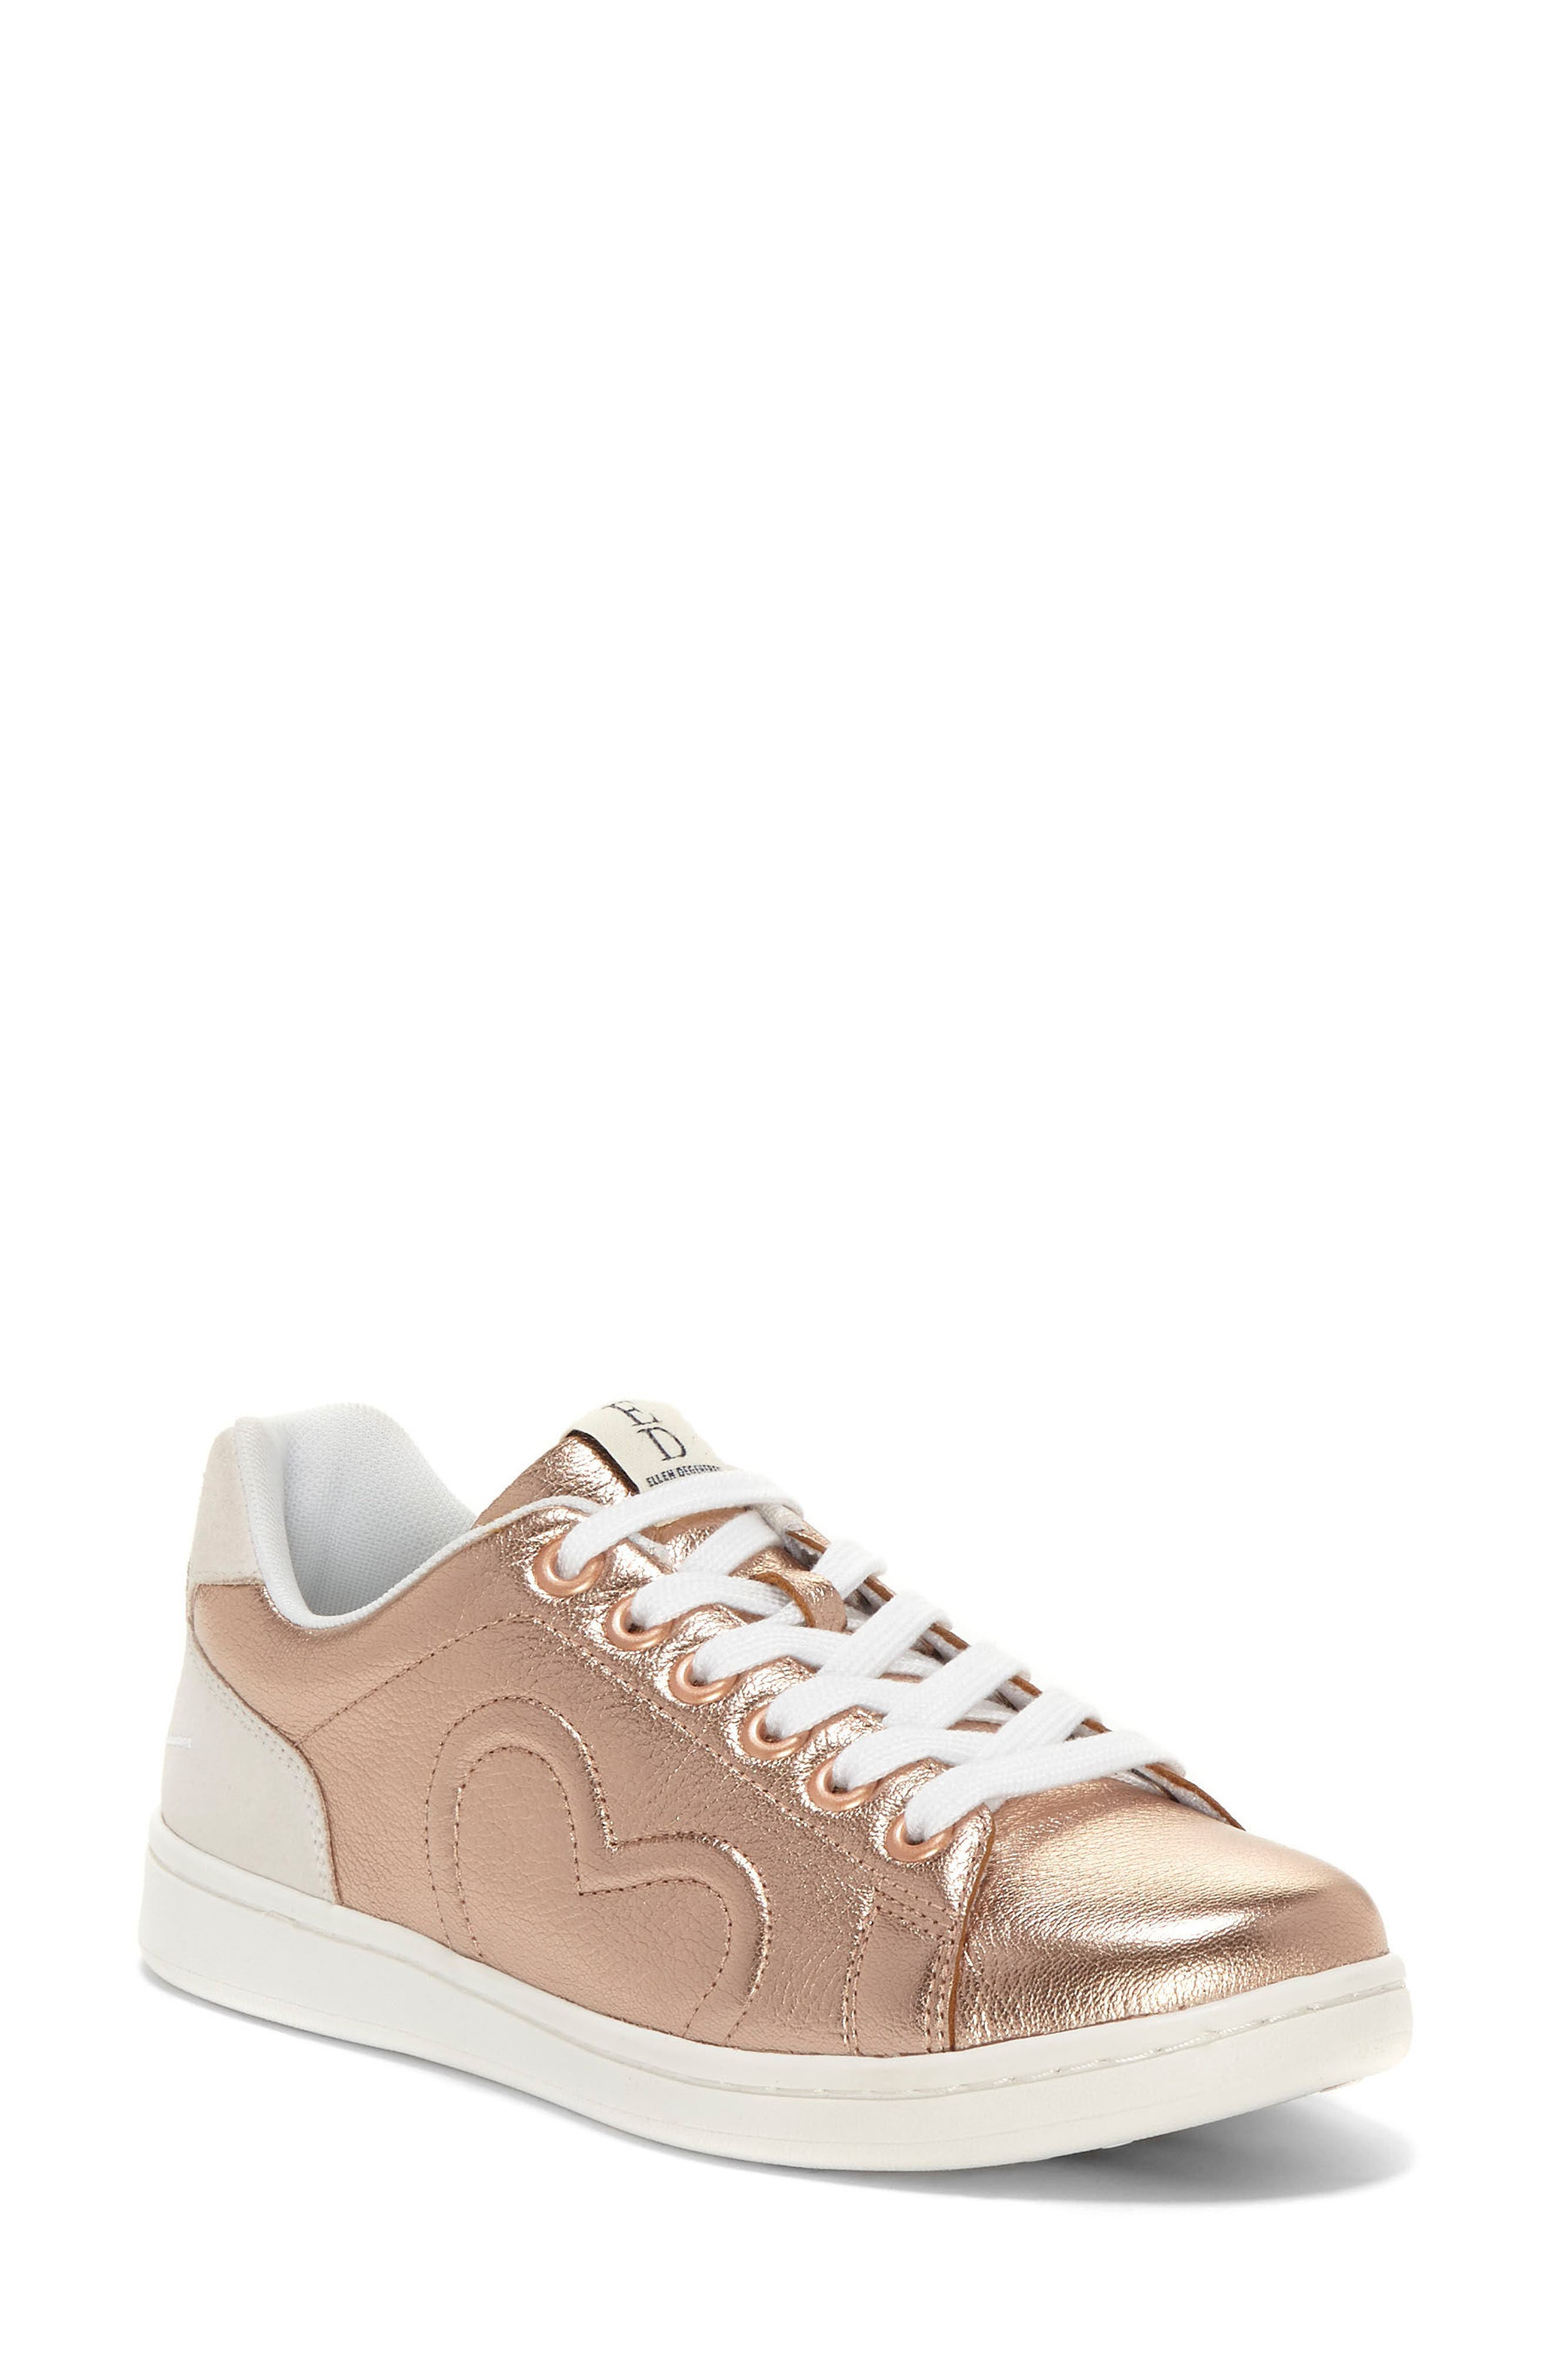 Chapunto Sneaker,                         Main,                         color, Rose Gold Leather